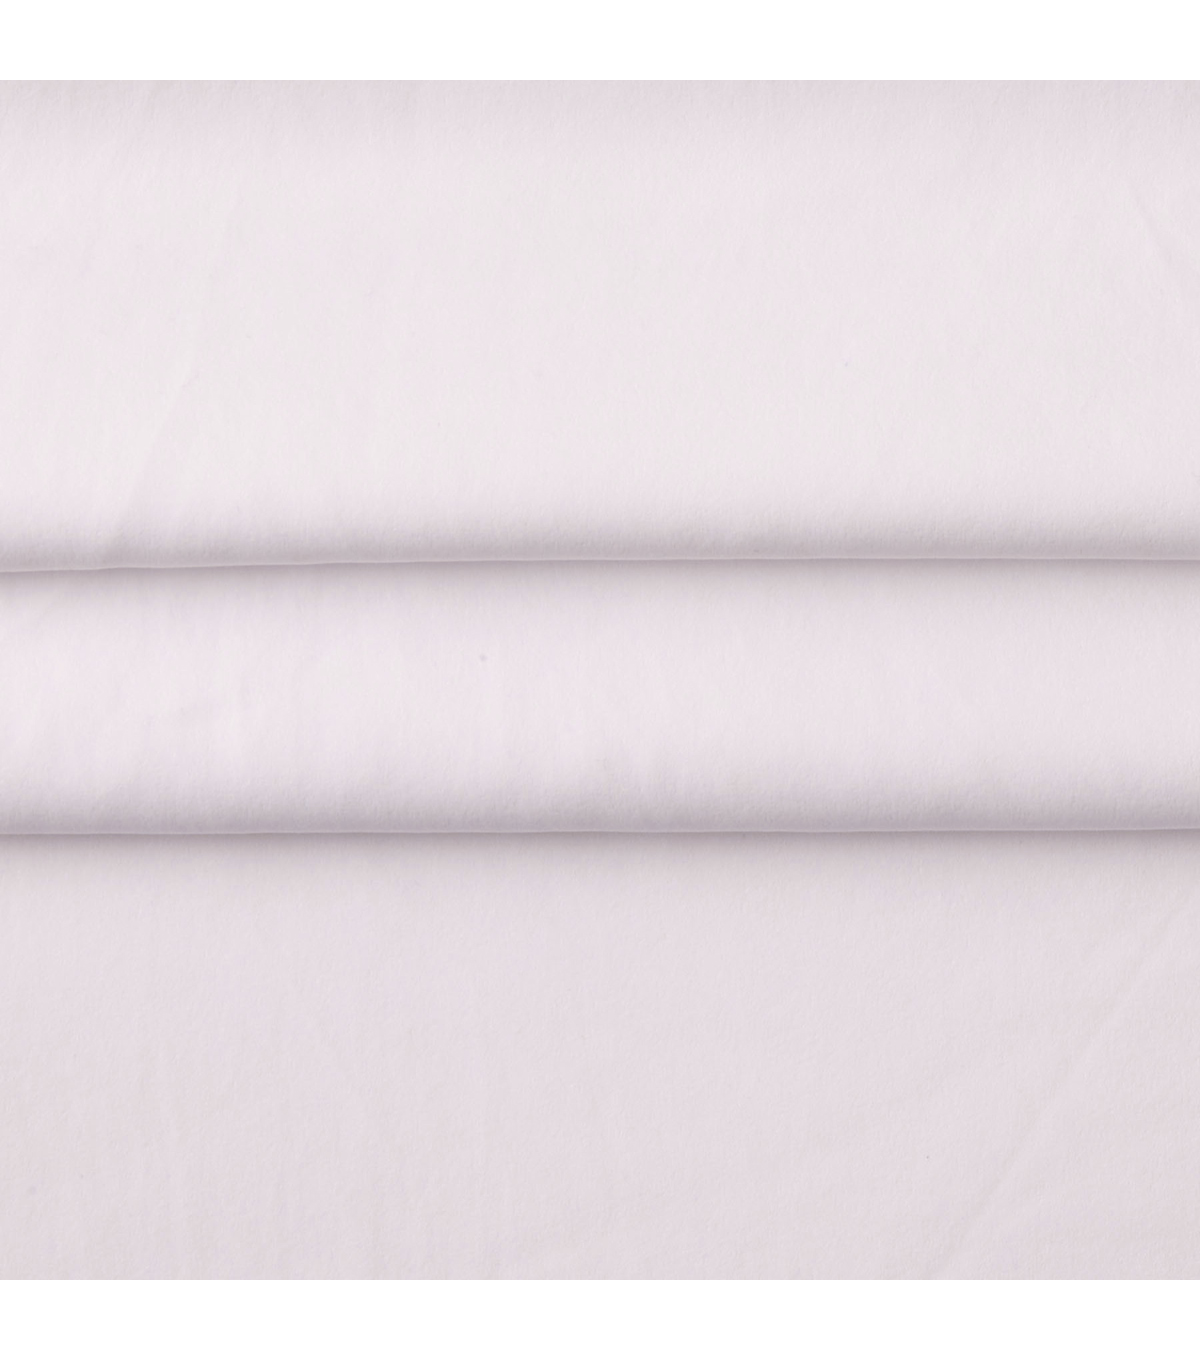 Casa Collection Sanded Satin Fabric -Brt White